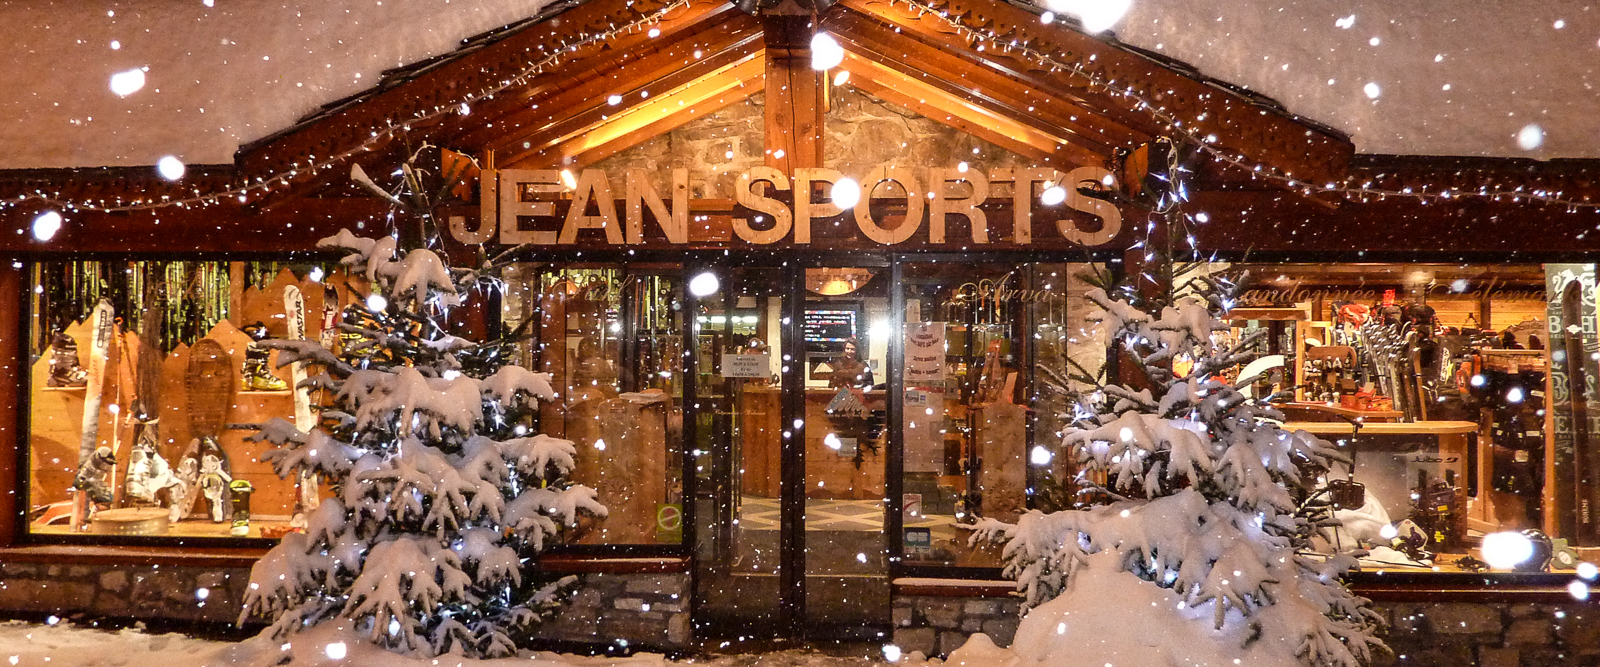 Jean Sports, Val d'Isere. France